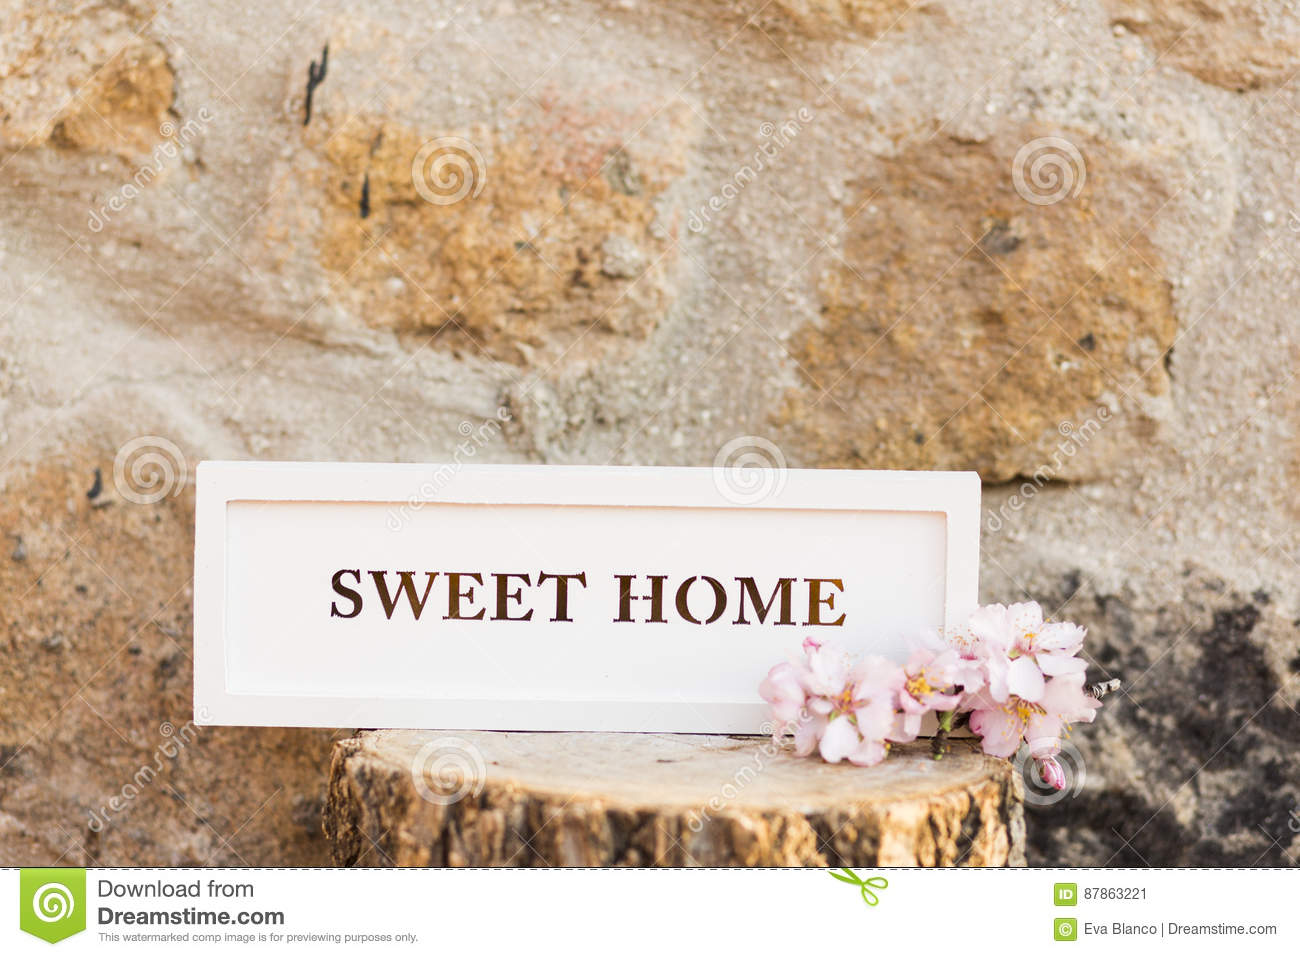 Sweet home sign on a wood trunk. Stone wall background